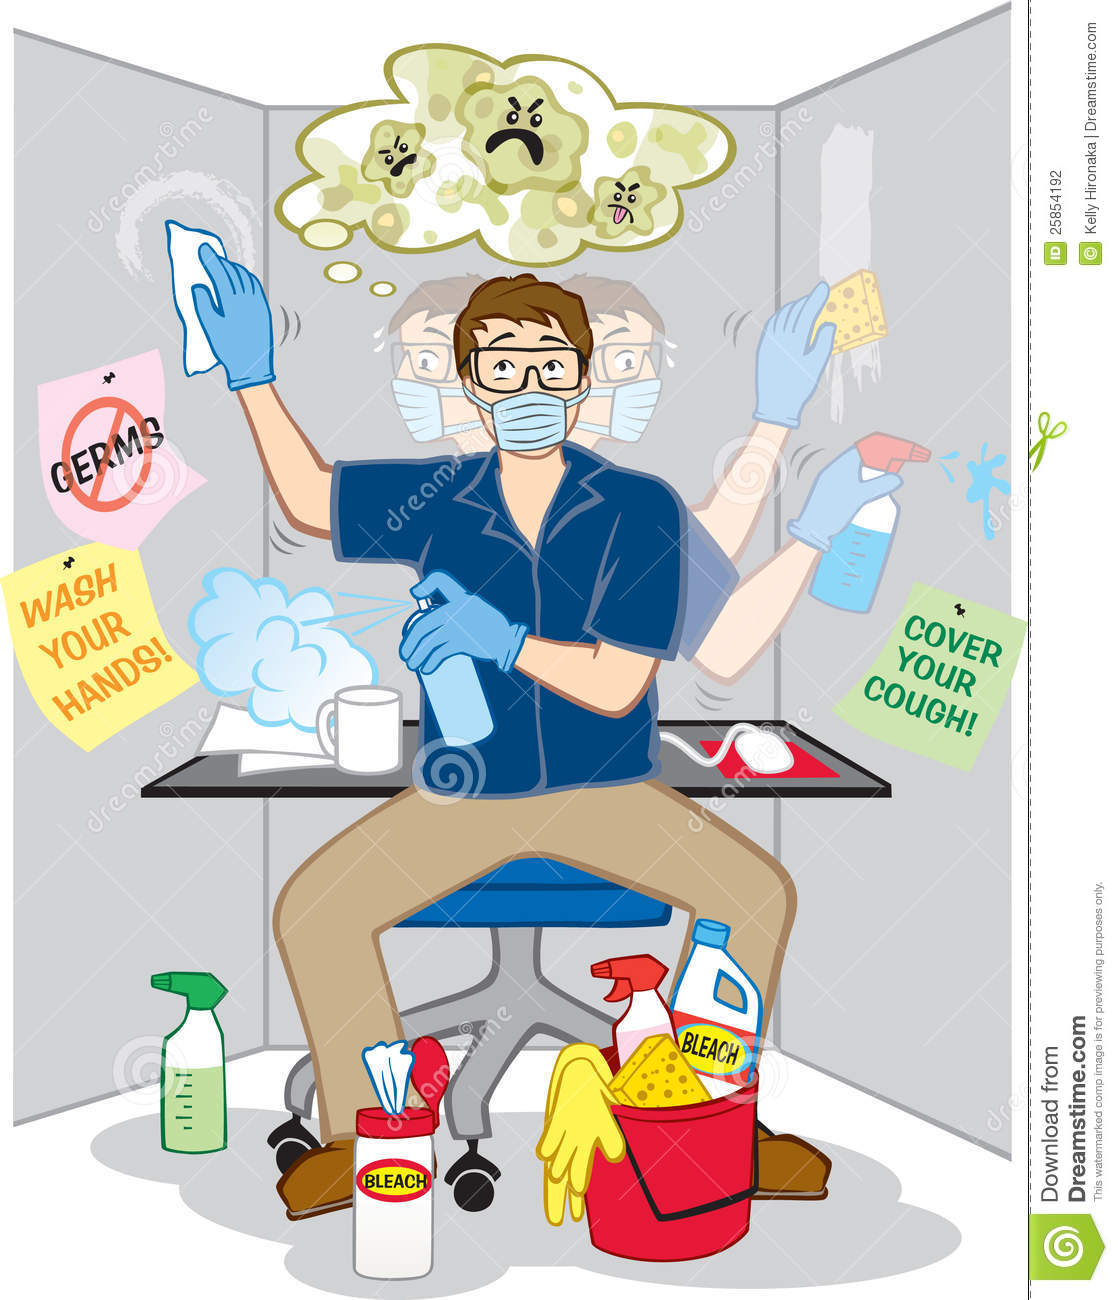 Obsessive Compulsive Fear Of Germs Stock Photography